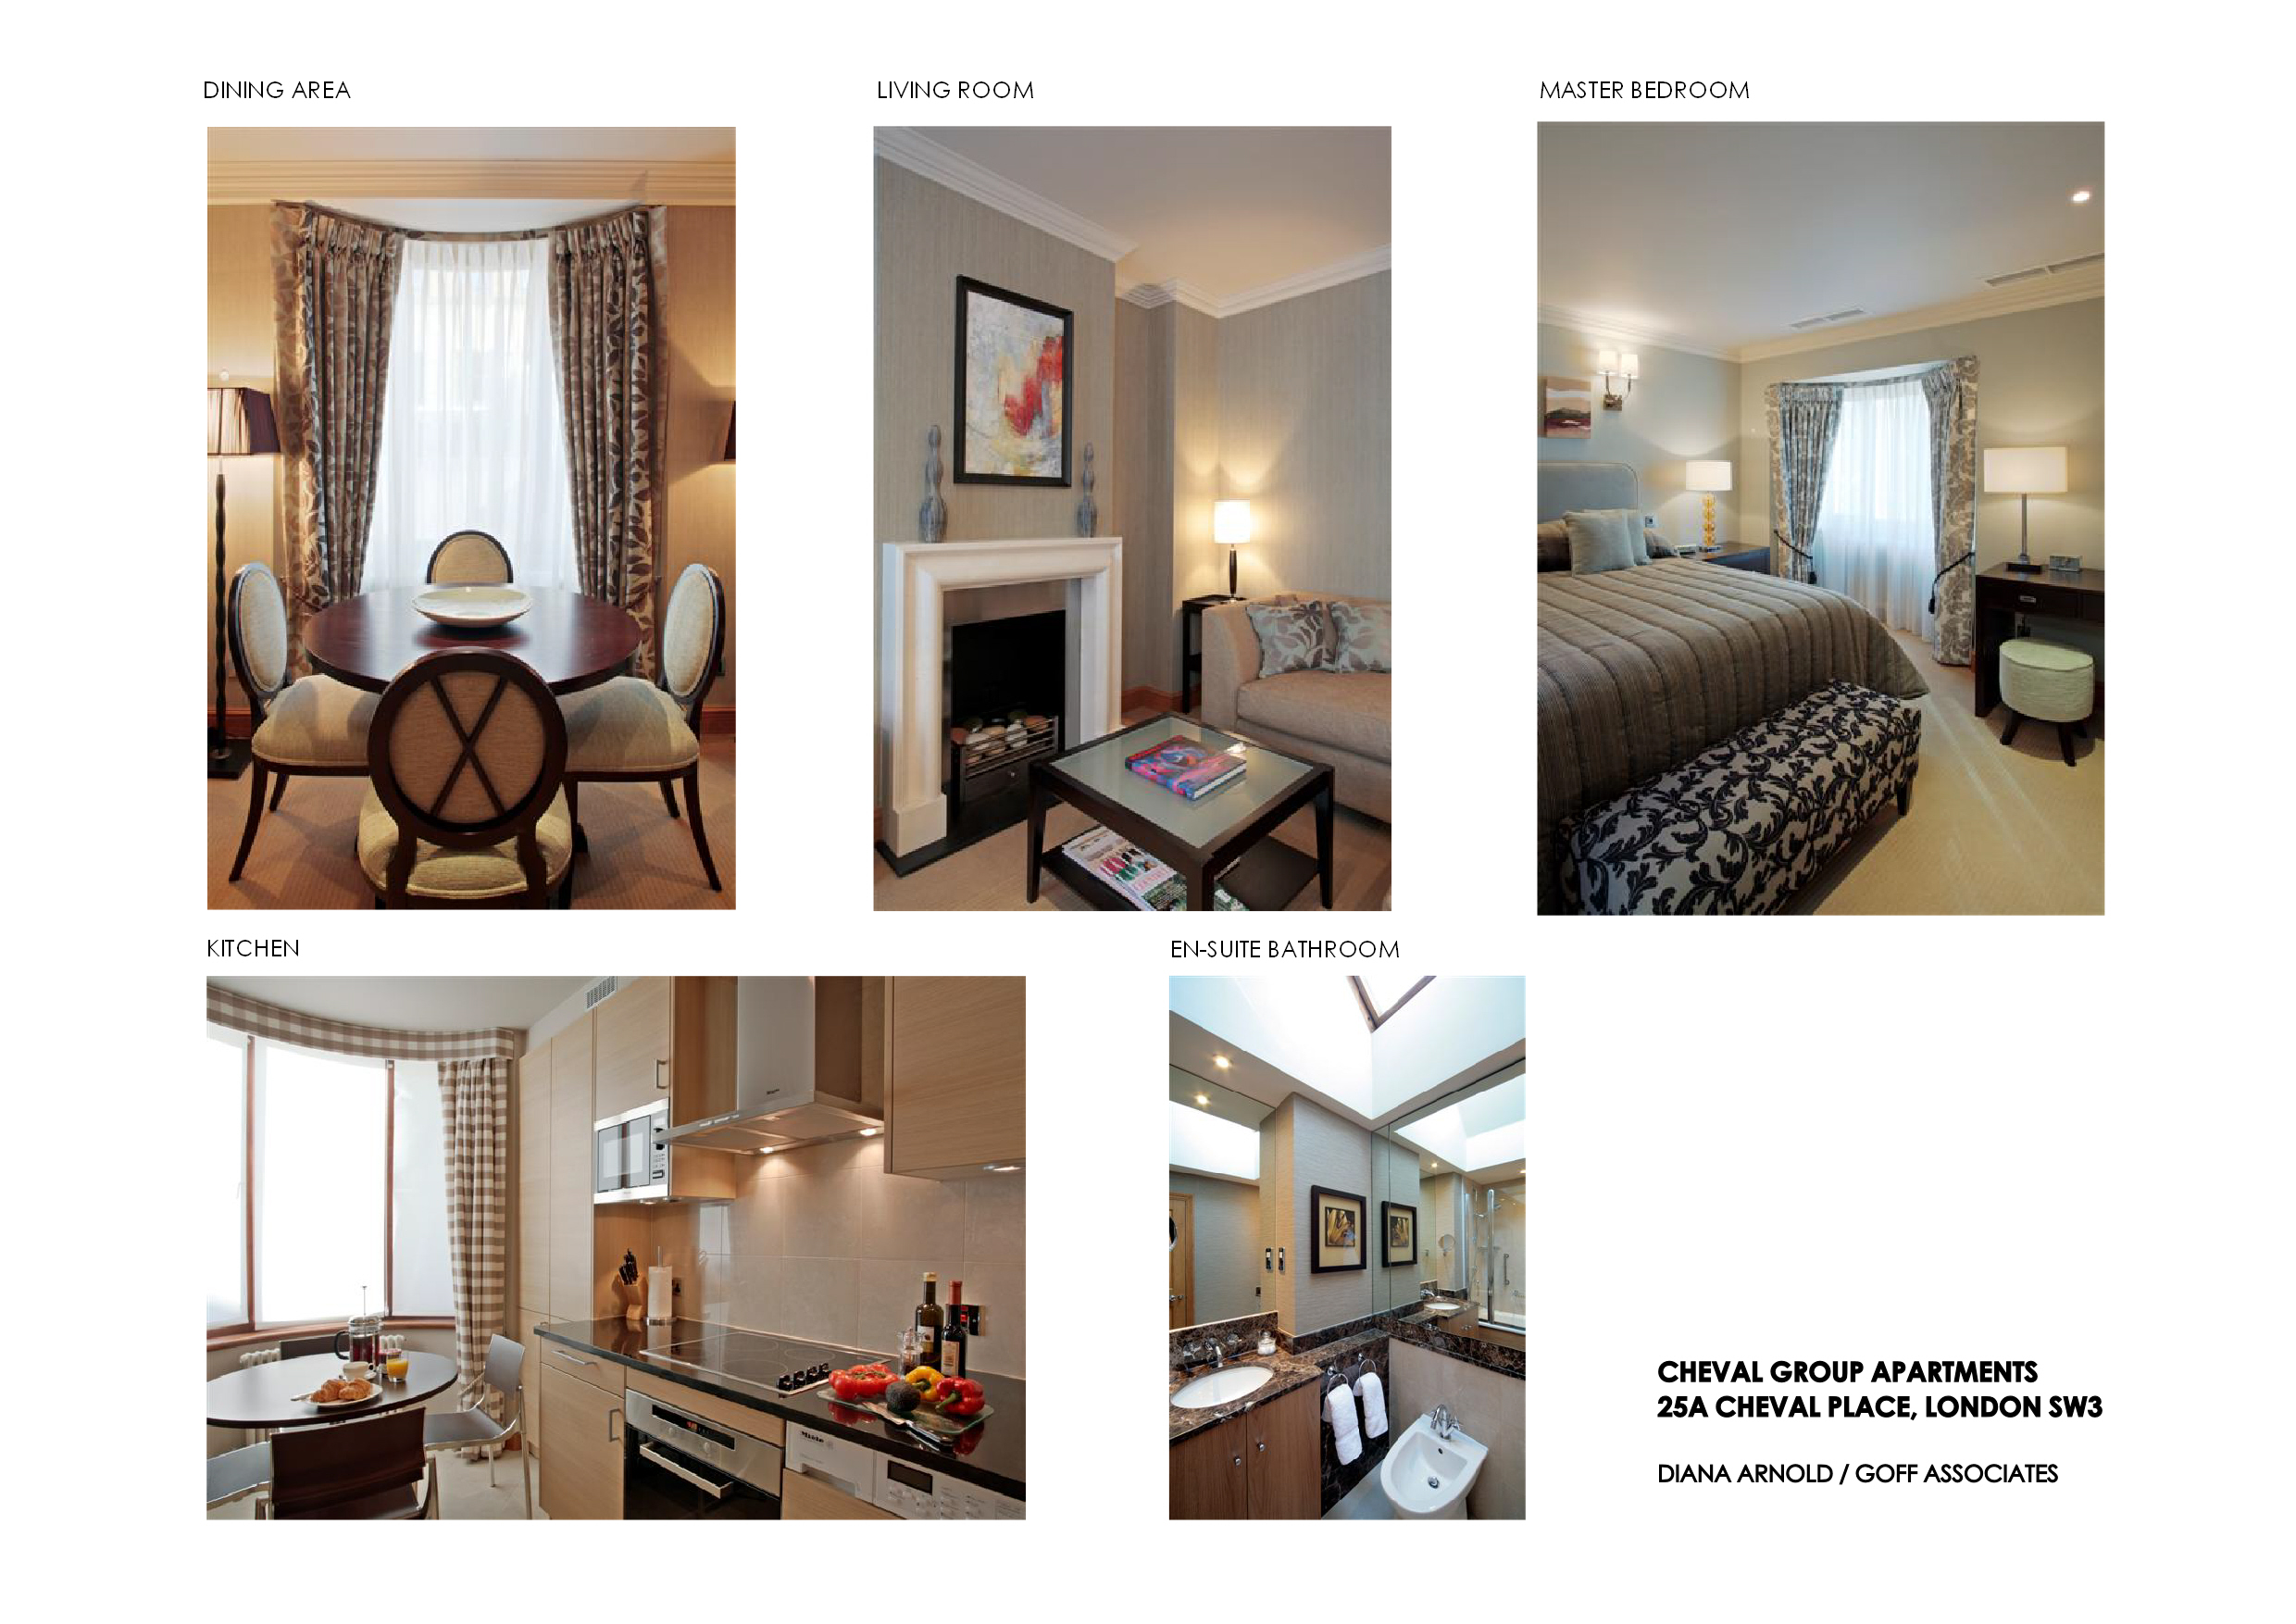 Residential design freelance interior interior design for Residential interior designers london